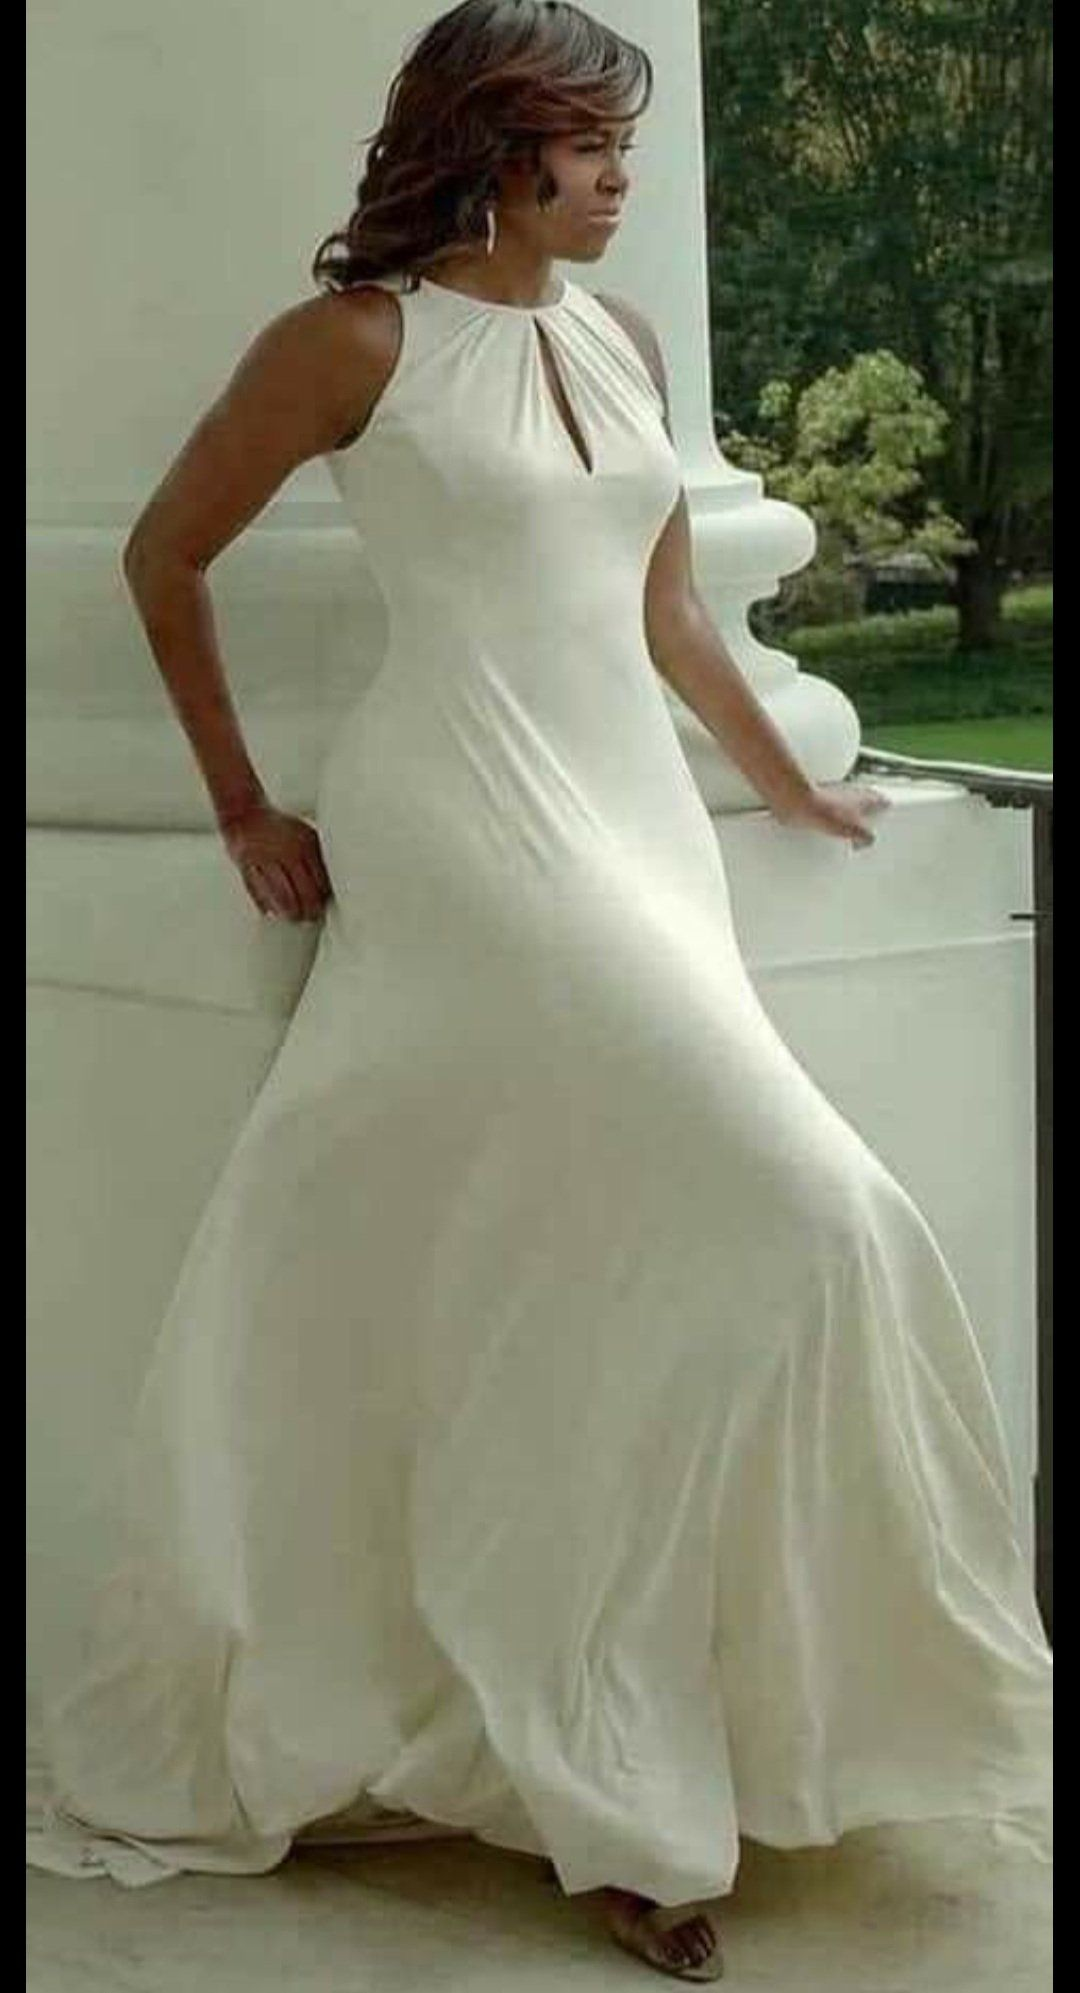 Lisa Bethel Young On Twitter Michelle Obama Fashion Michelle Obama Fashion